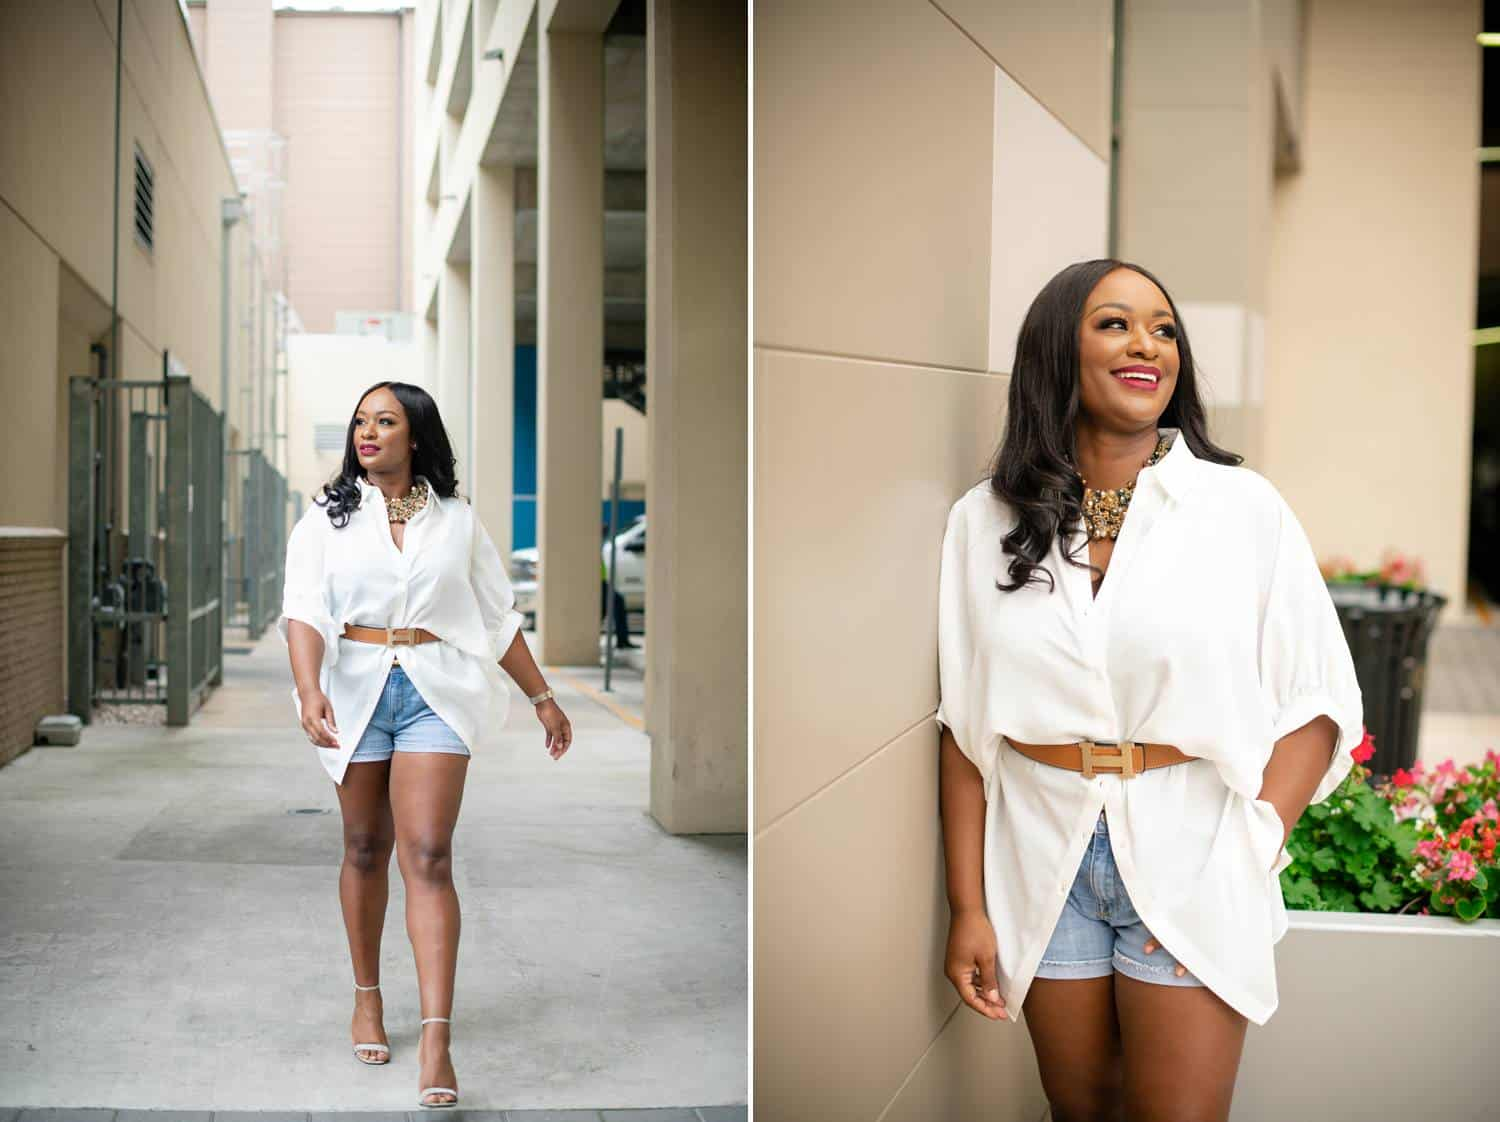 A Black woman in denim shorts and a leather-belted white top strolls through a neutral colored alleyway.